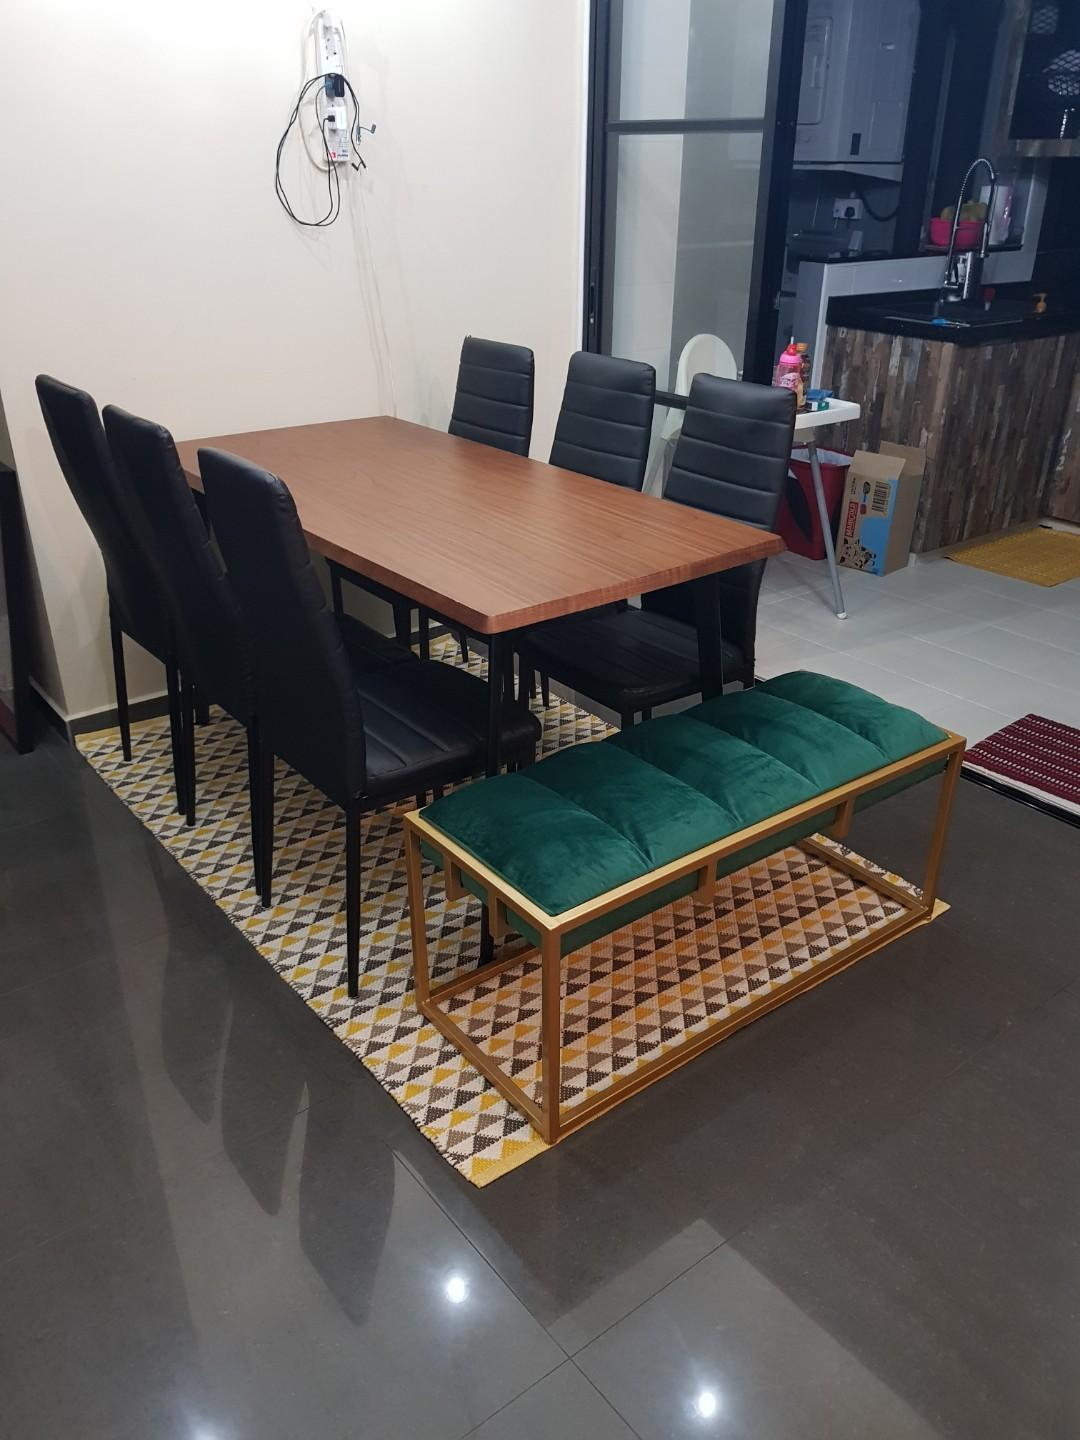 Fantastic Wooden Dining Table And Chairs Furniture Tables Chairs Dailytribune Chair Design For Home Dailytribuneorg